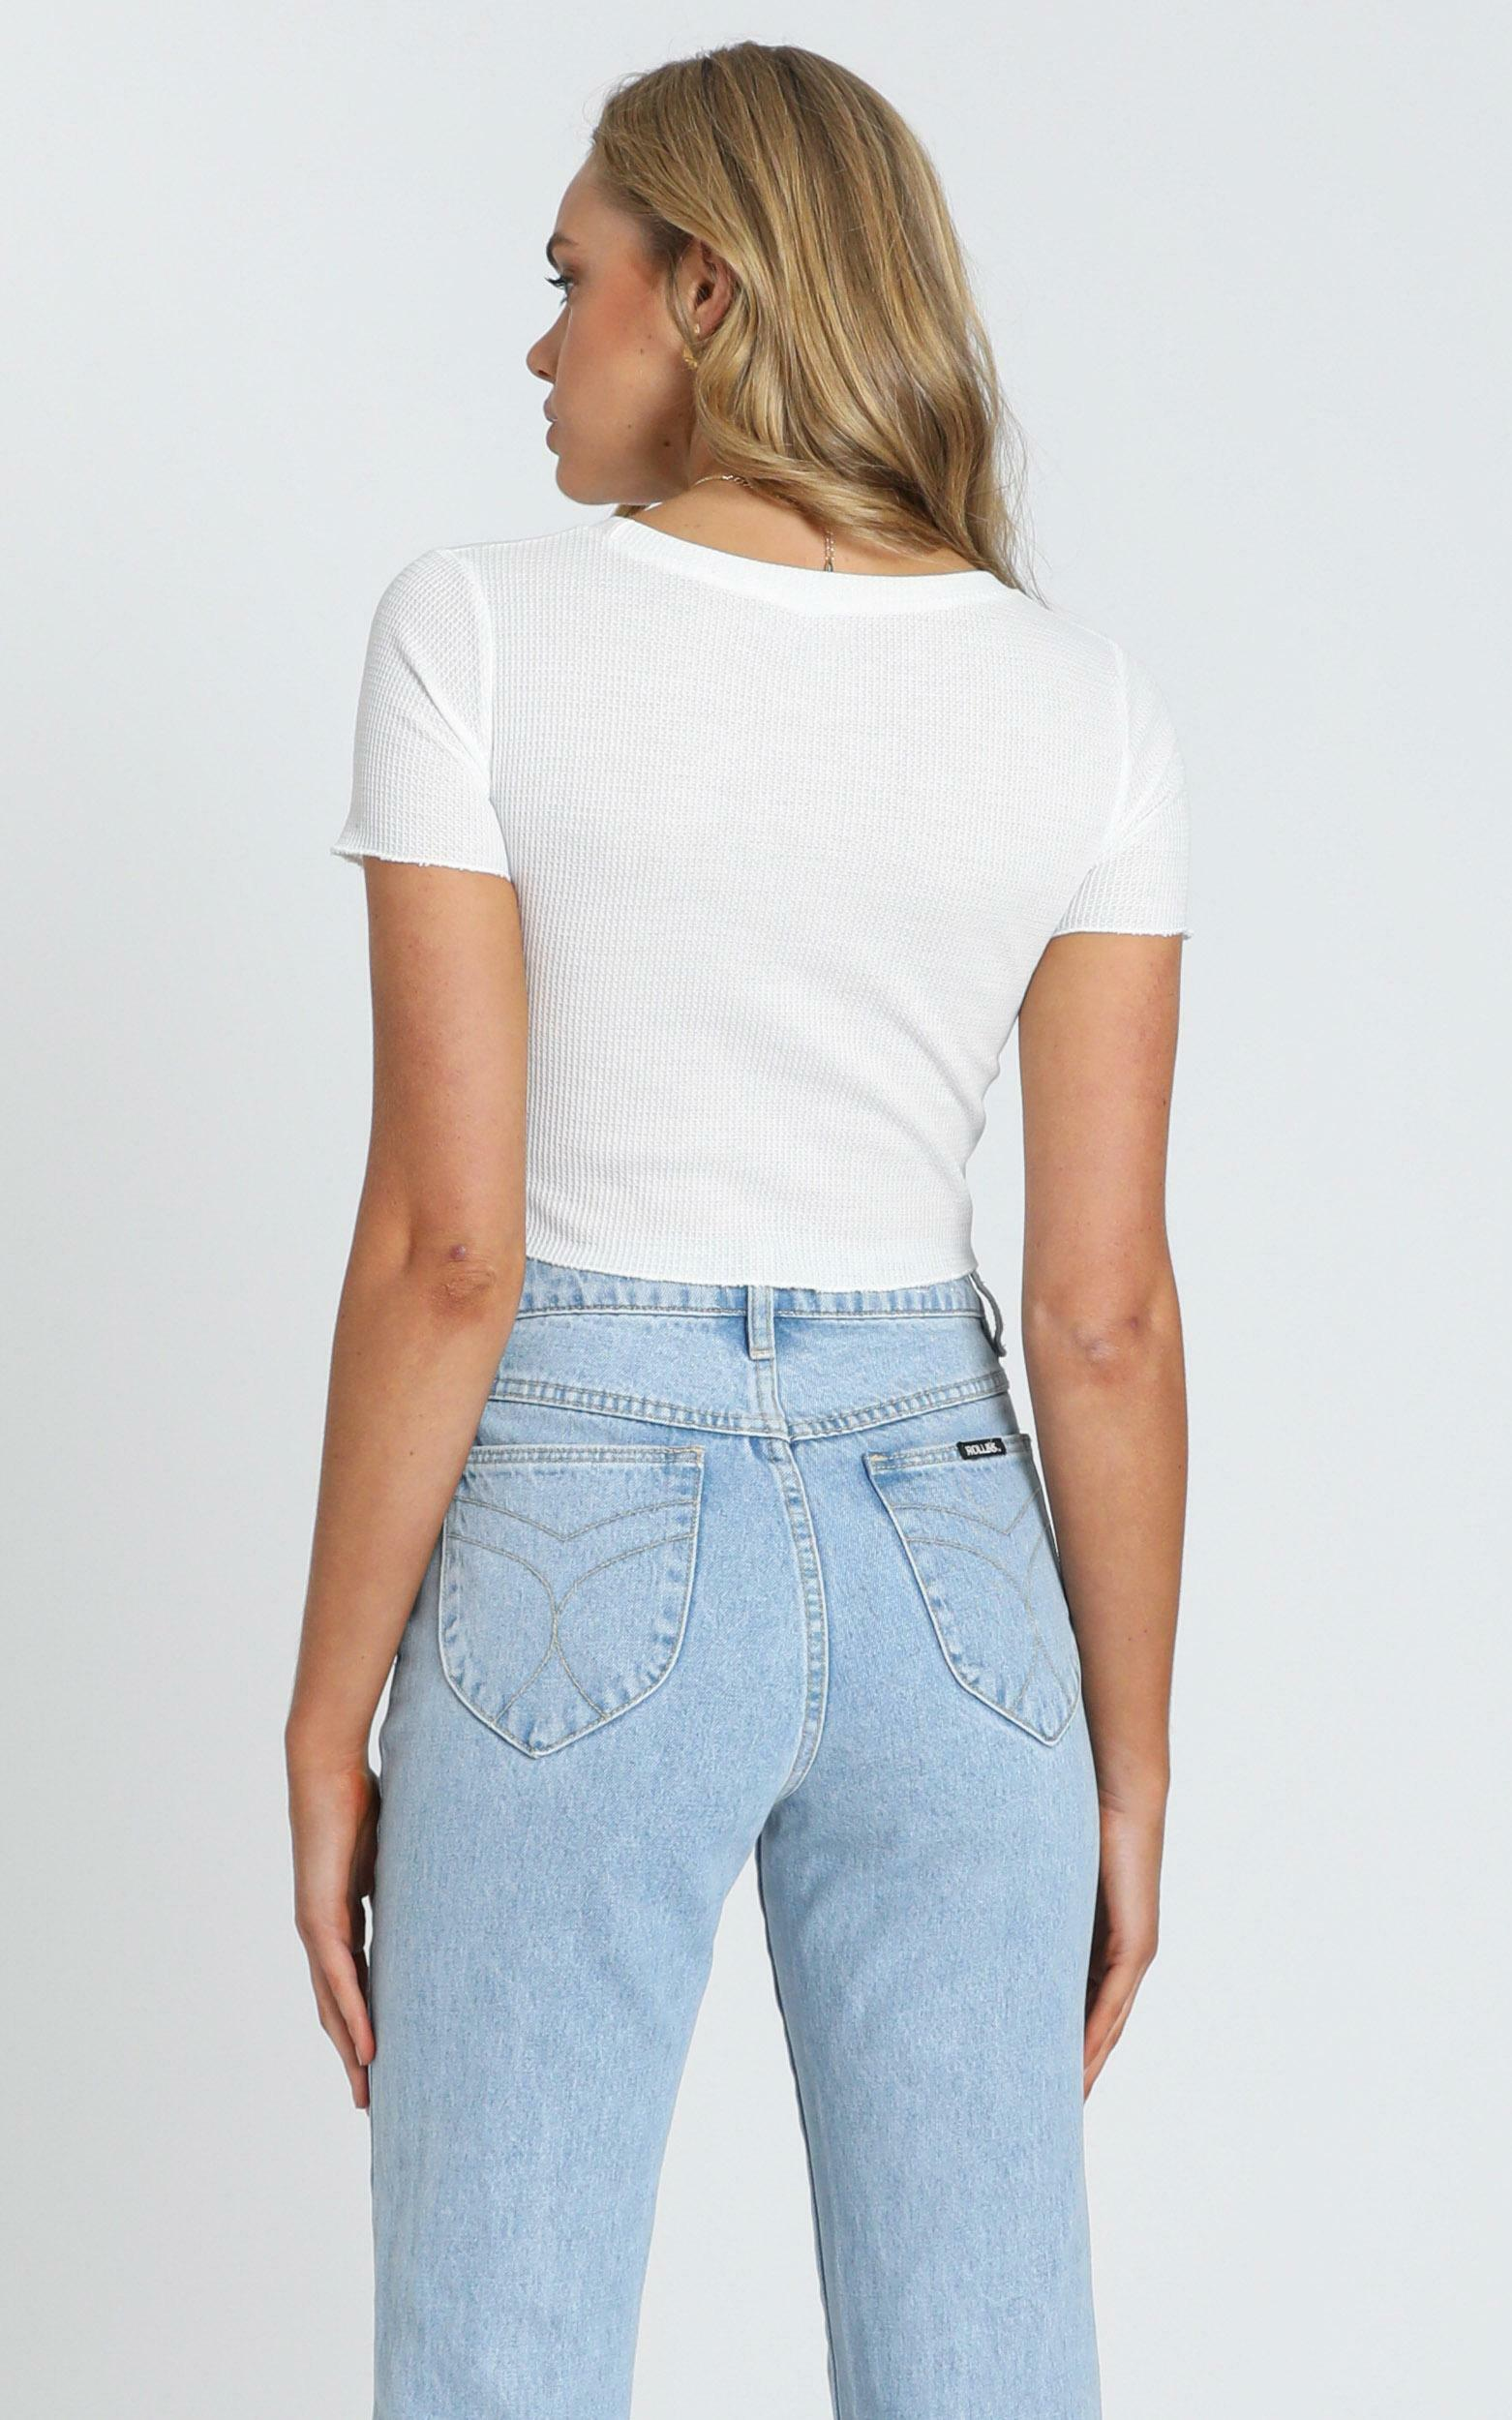 Ezra Textured T-Shirt in White - 6 (XS), White, hi-res image number null